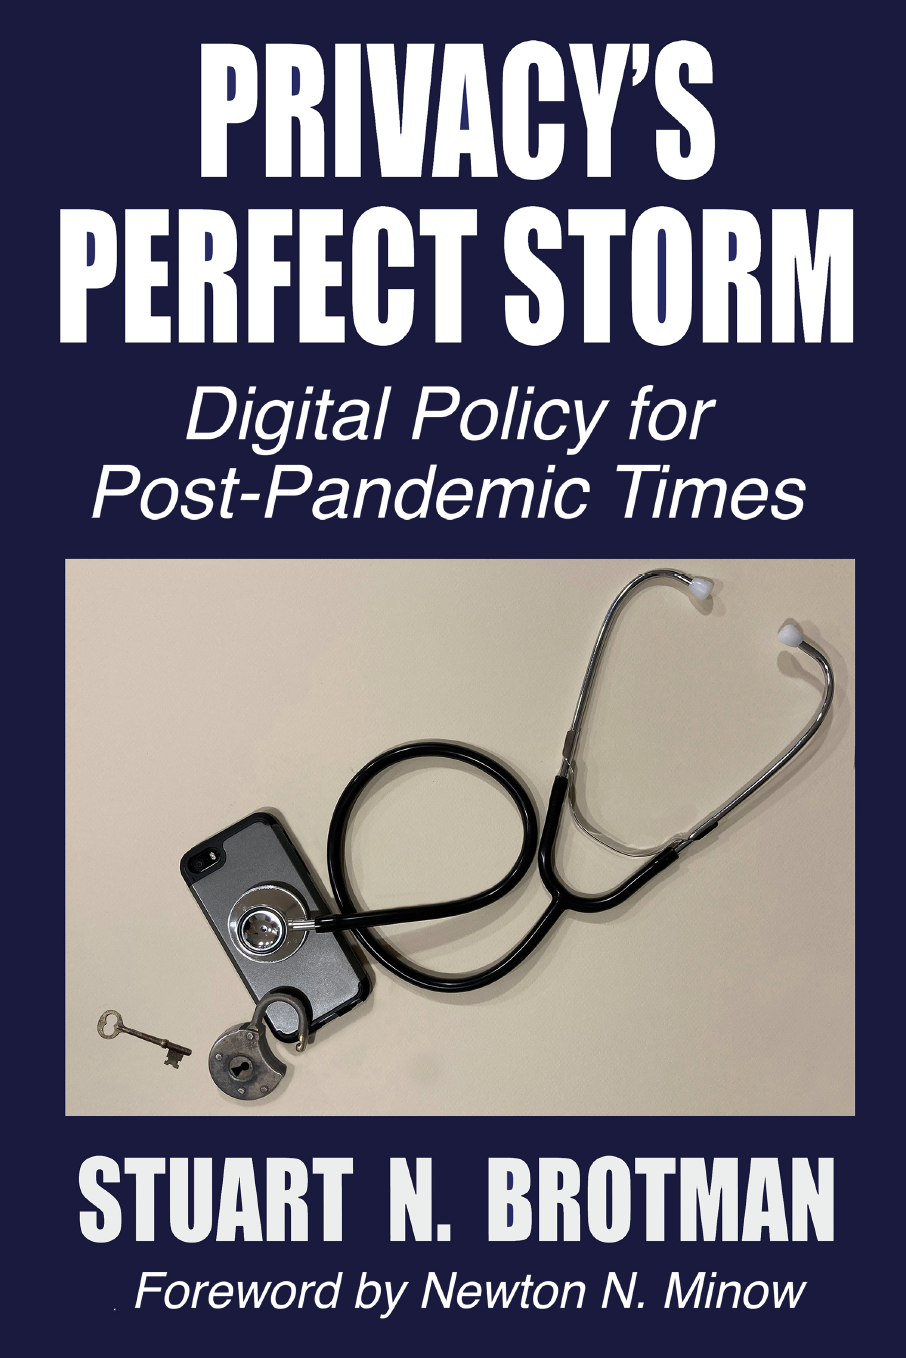 Privacy's Perfect Storm: Digital Policy for Post-Pandemic Times